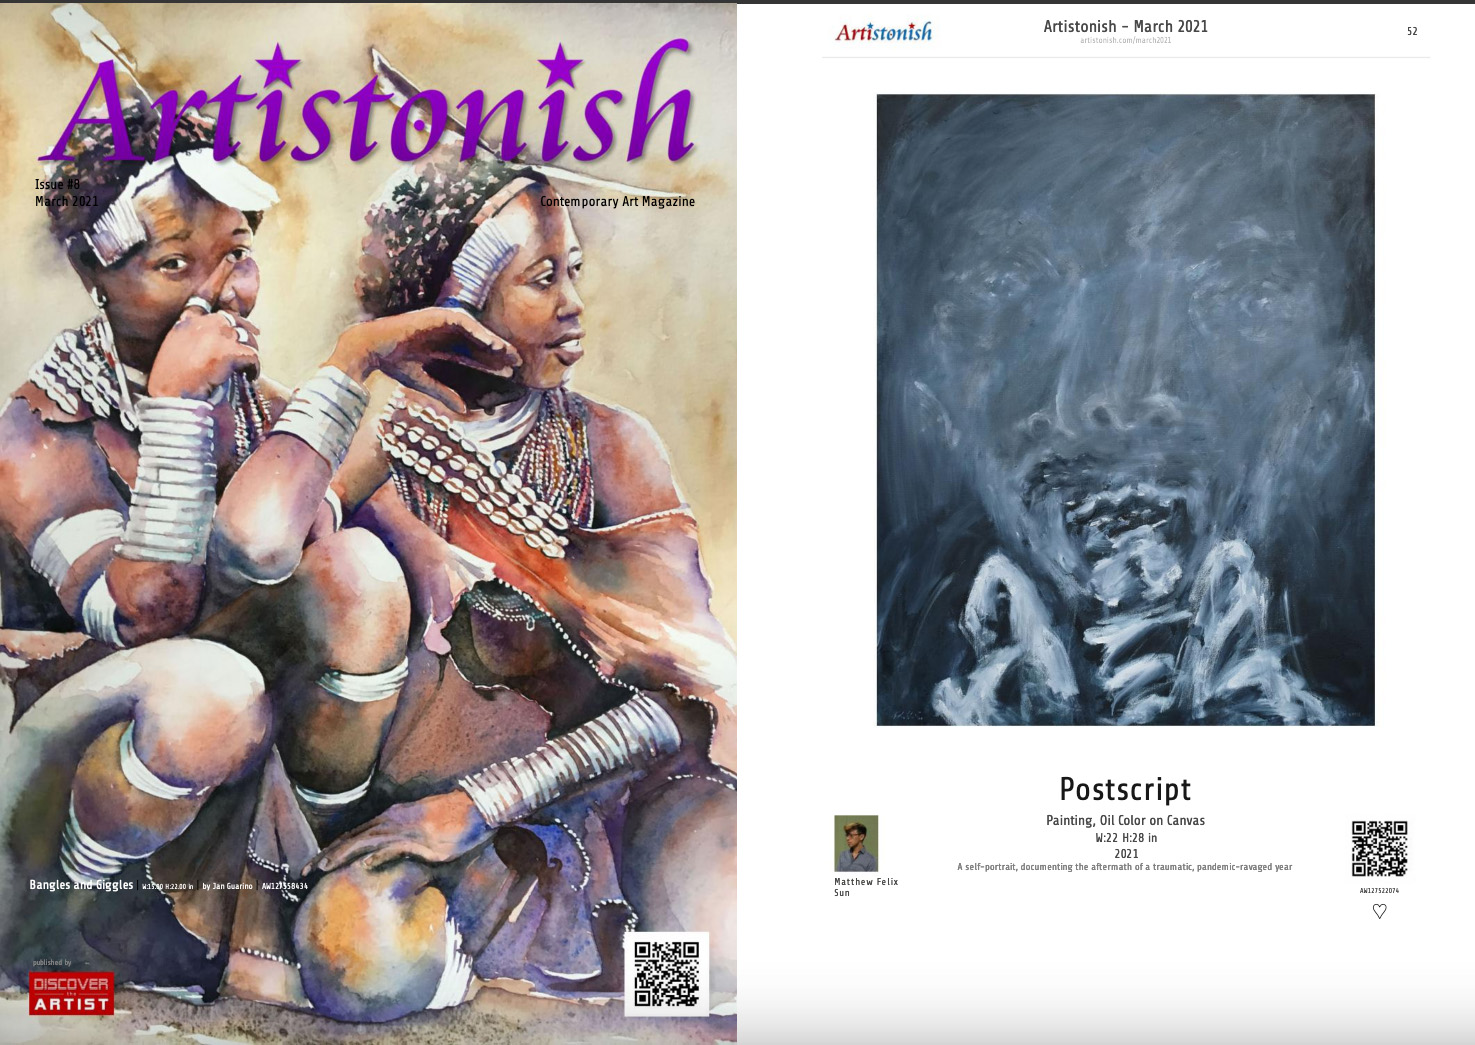 Postscript, oil Painting, published by Artistonish magazine, March 2021